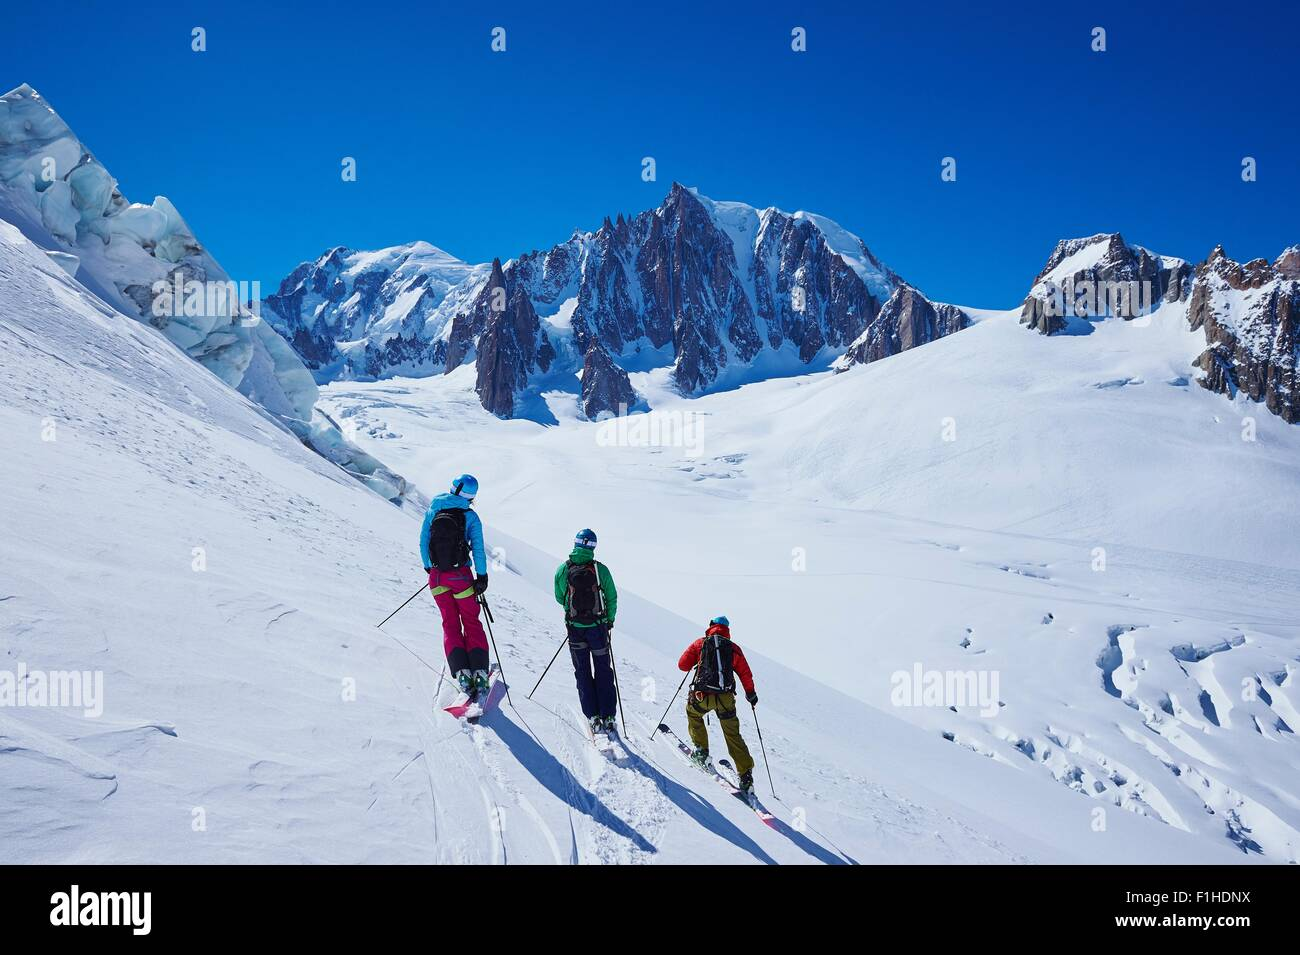 Three adult skiers side by side on Mont Blanc massif, Graian Alps, France - Stock Image